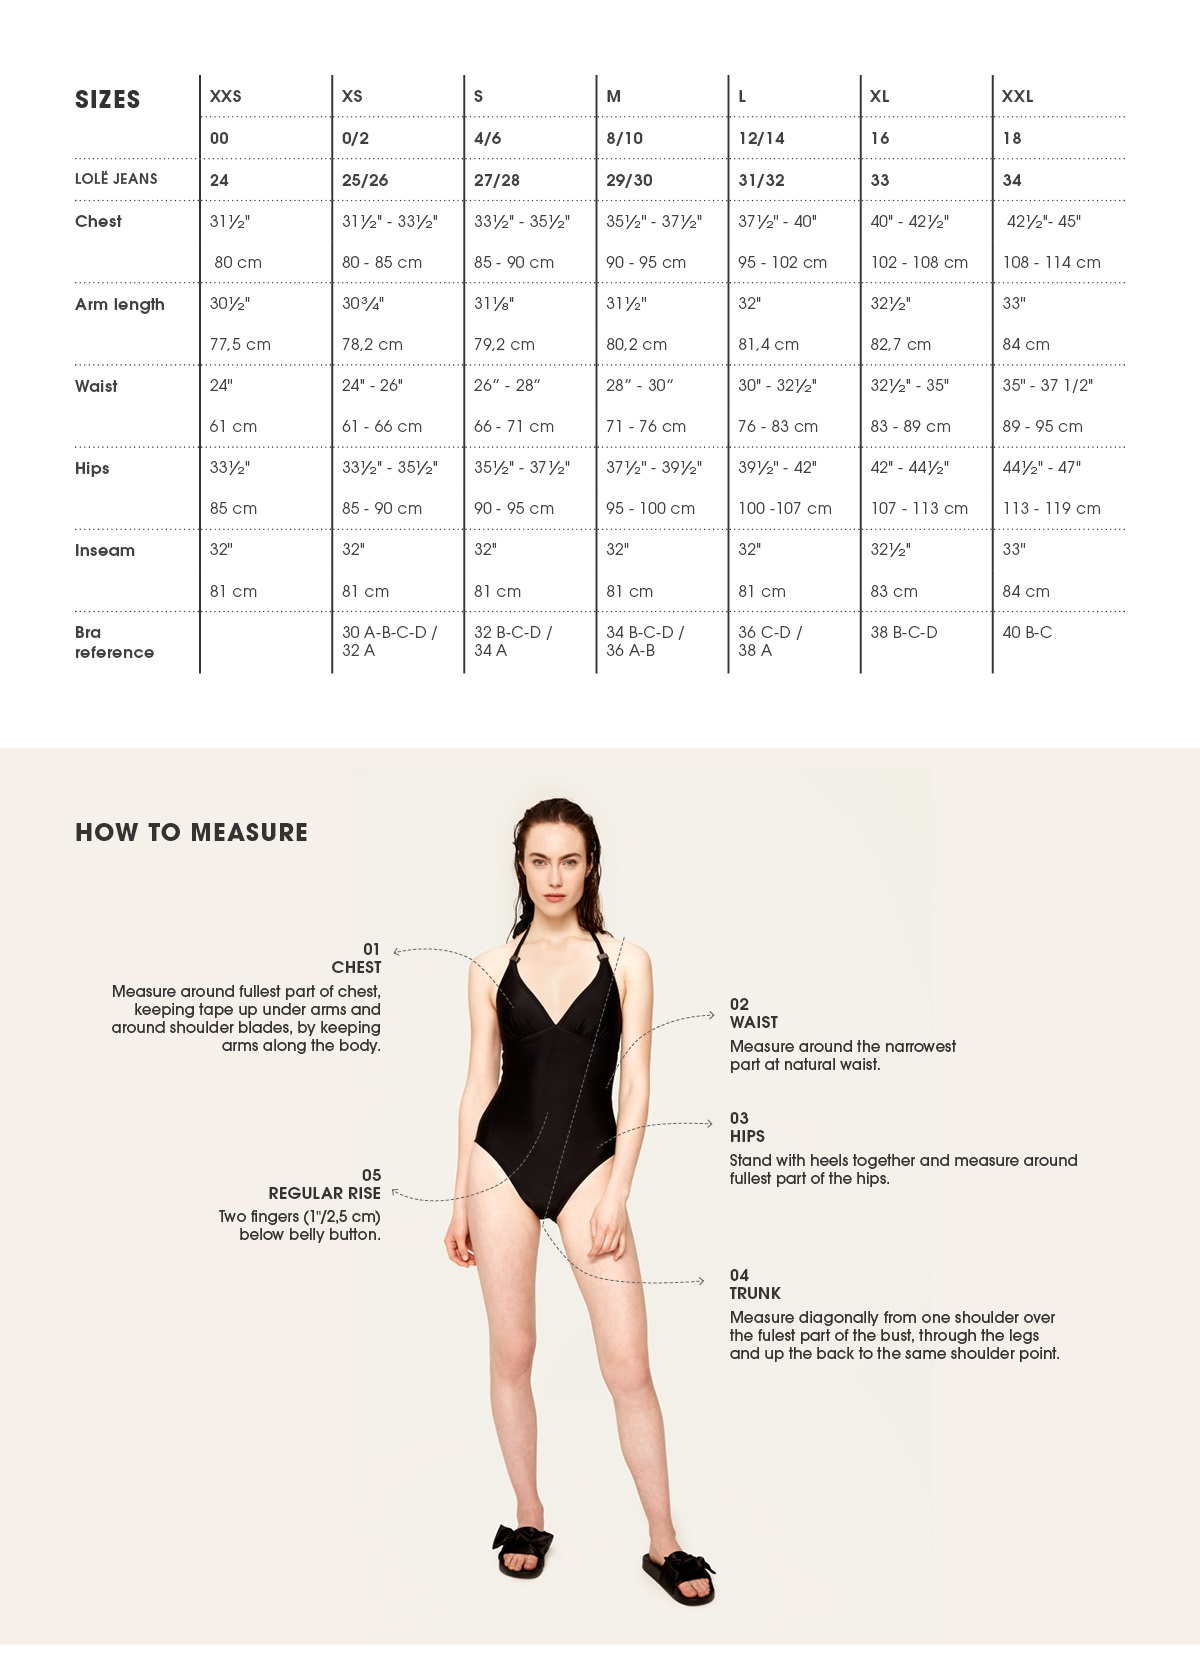 Size guide lol